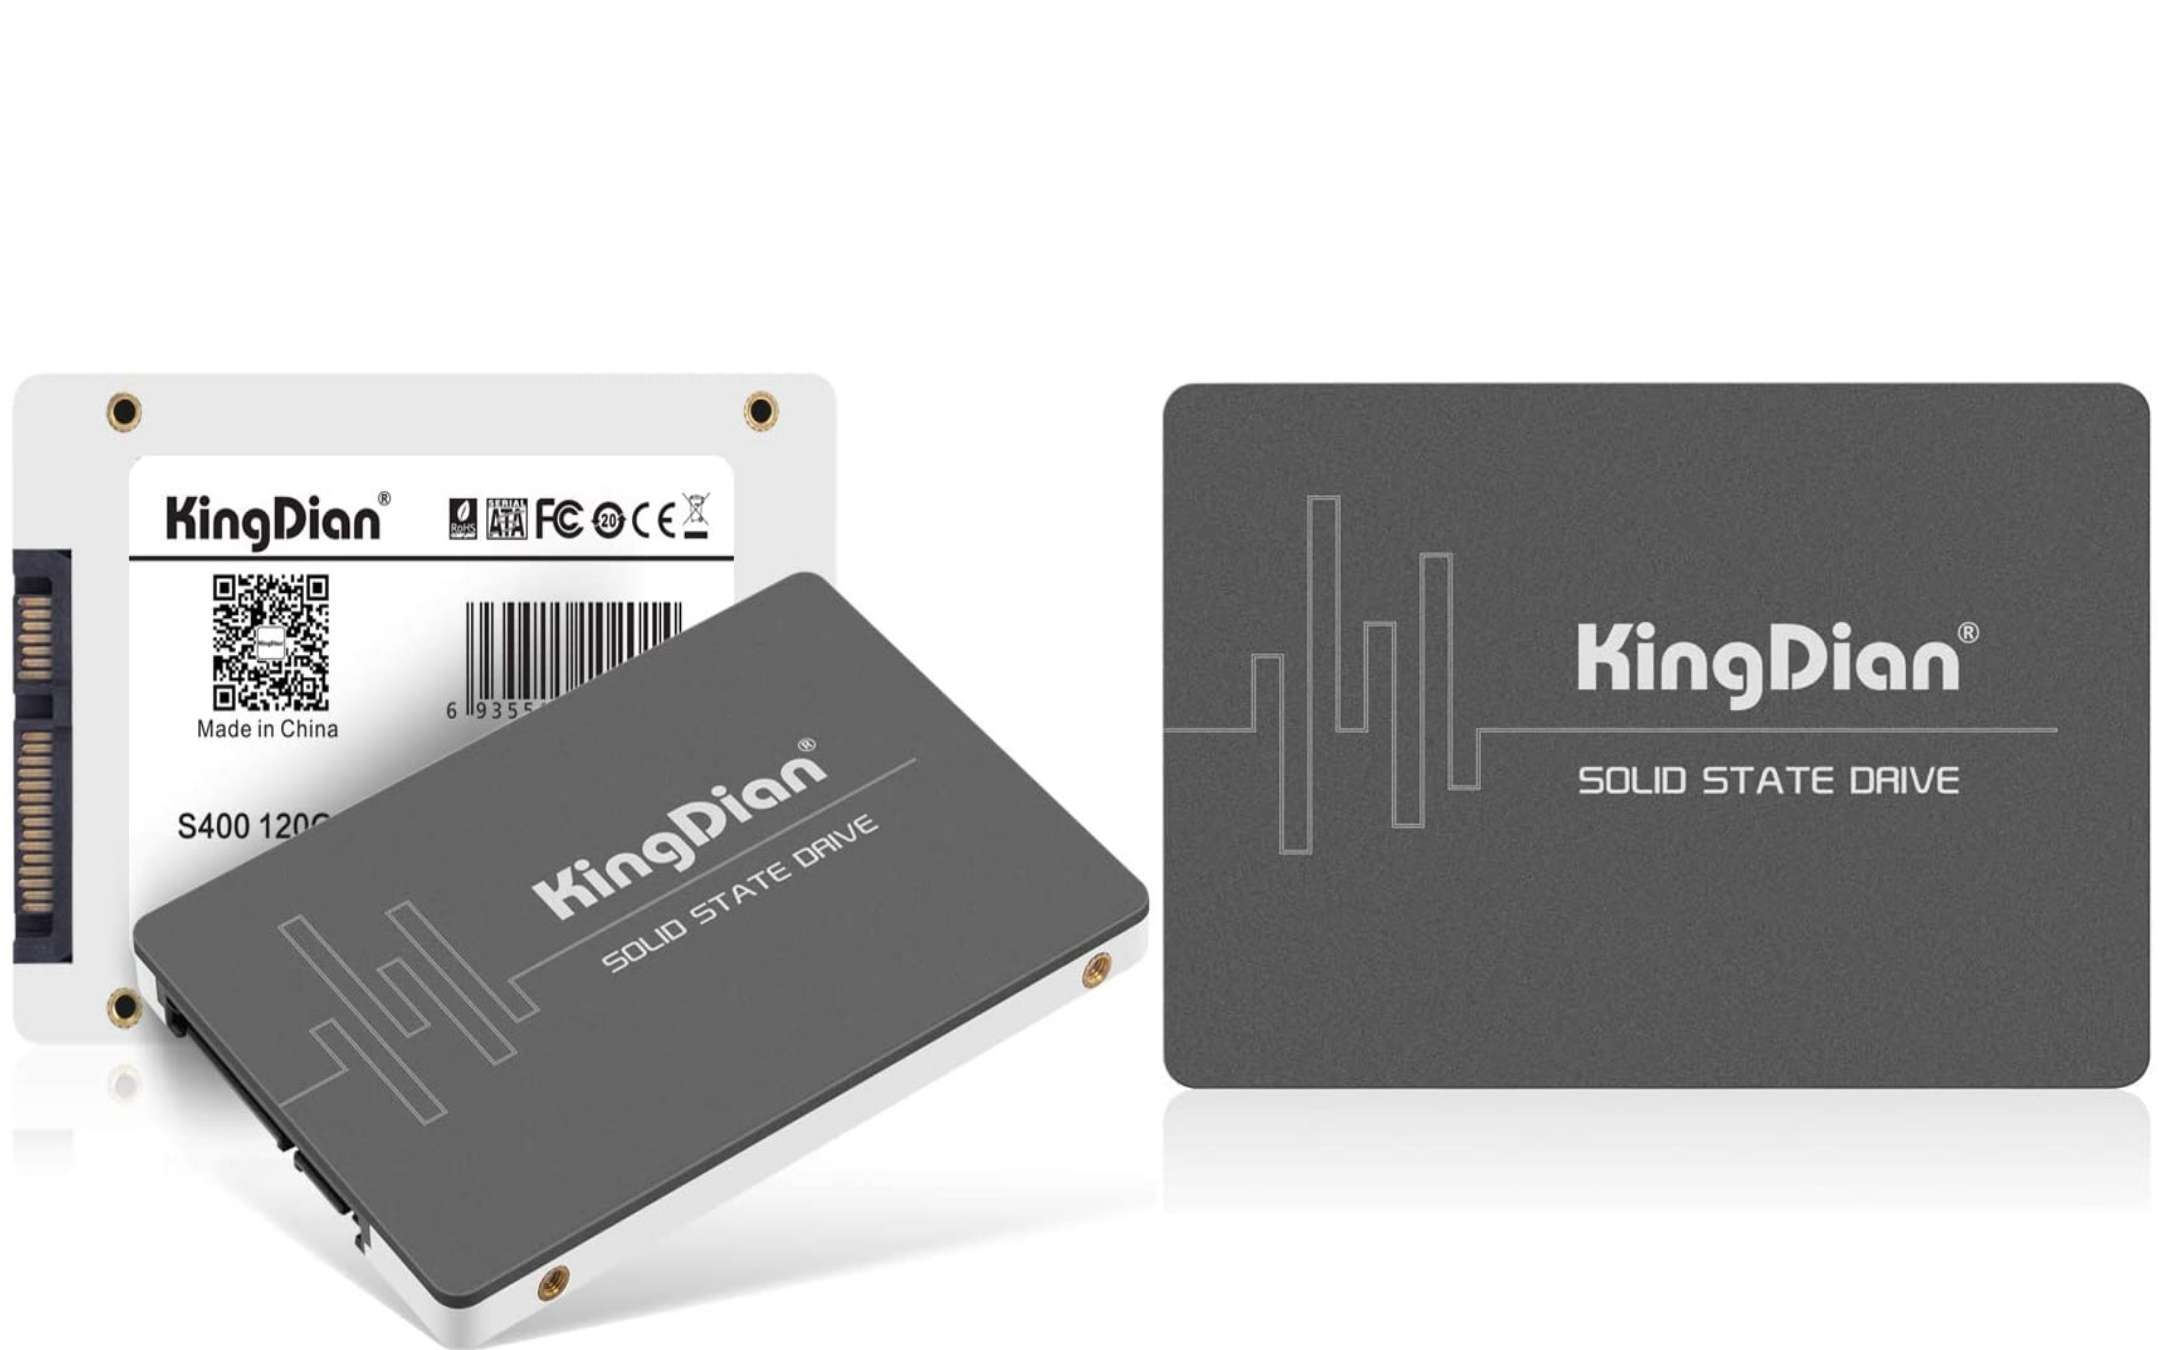 KingDian 120GB - 2